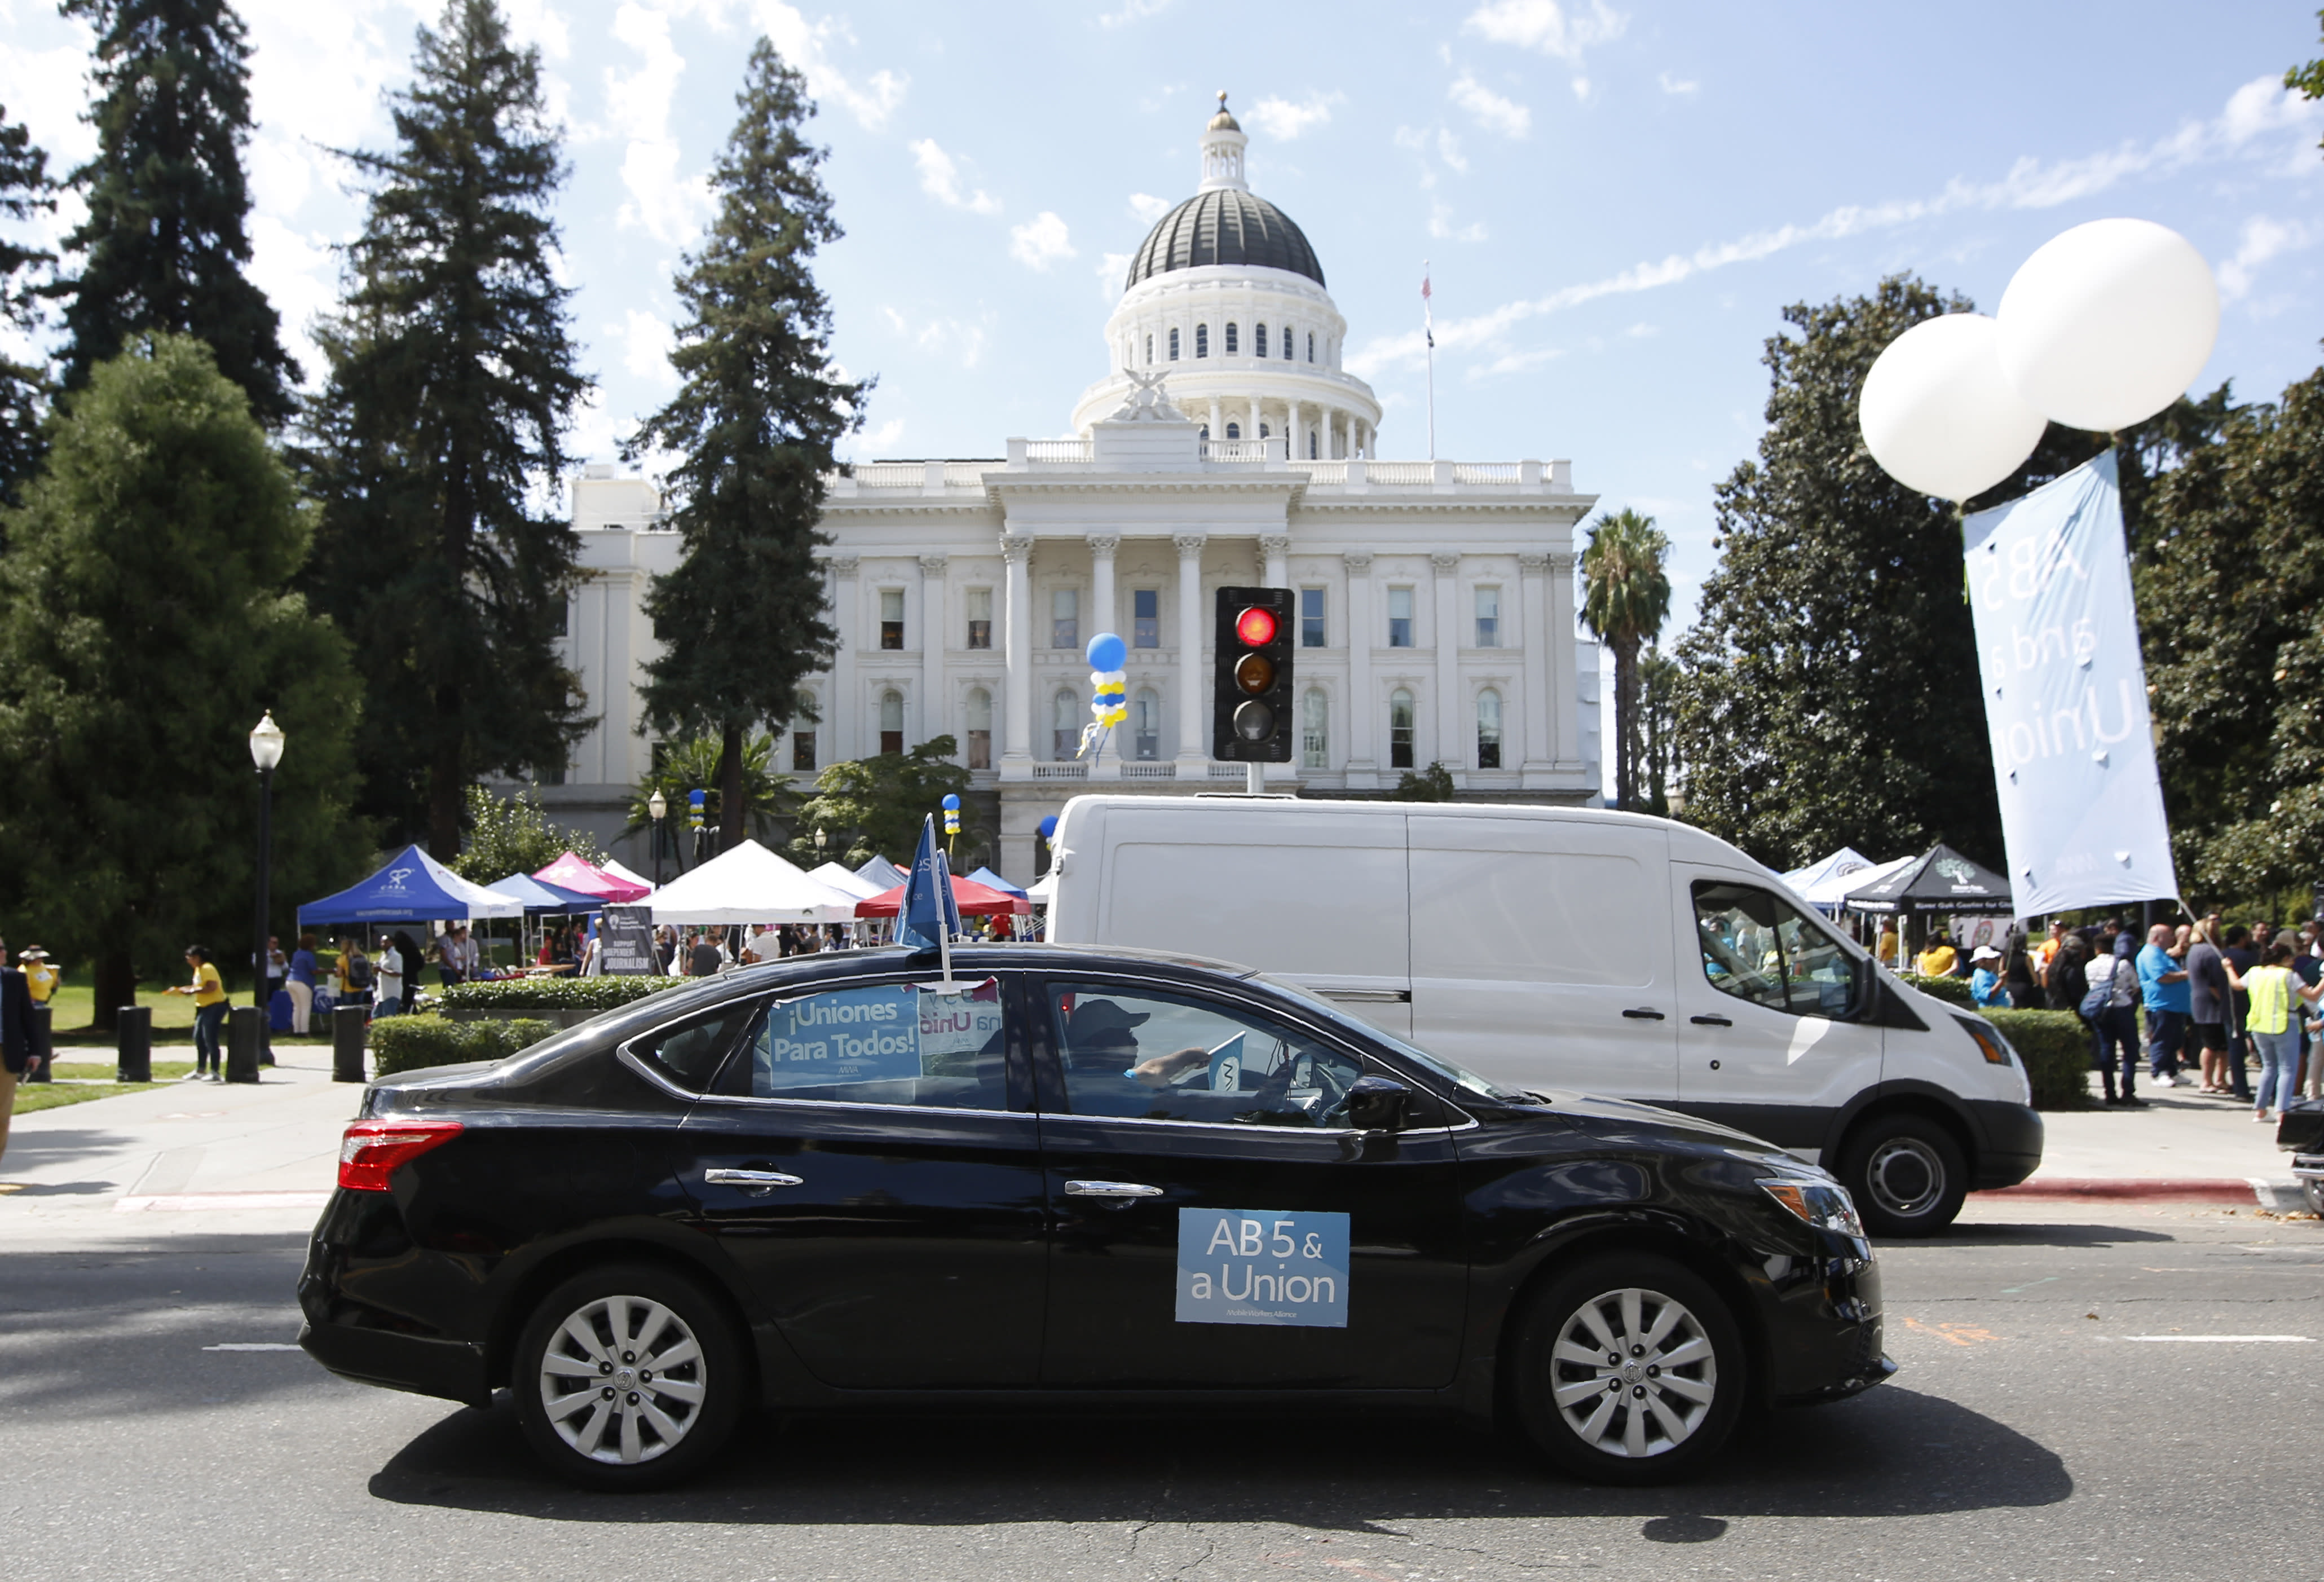 California Governor Signs AB5 Bill Into Law Protecting Gig Workers